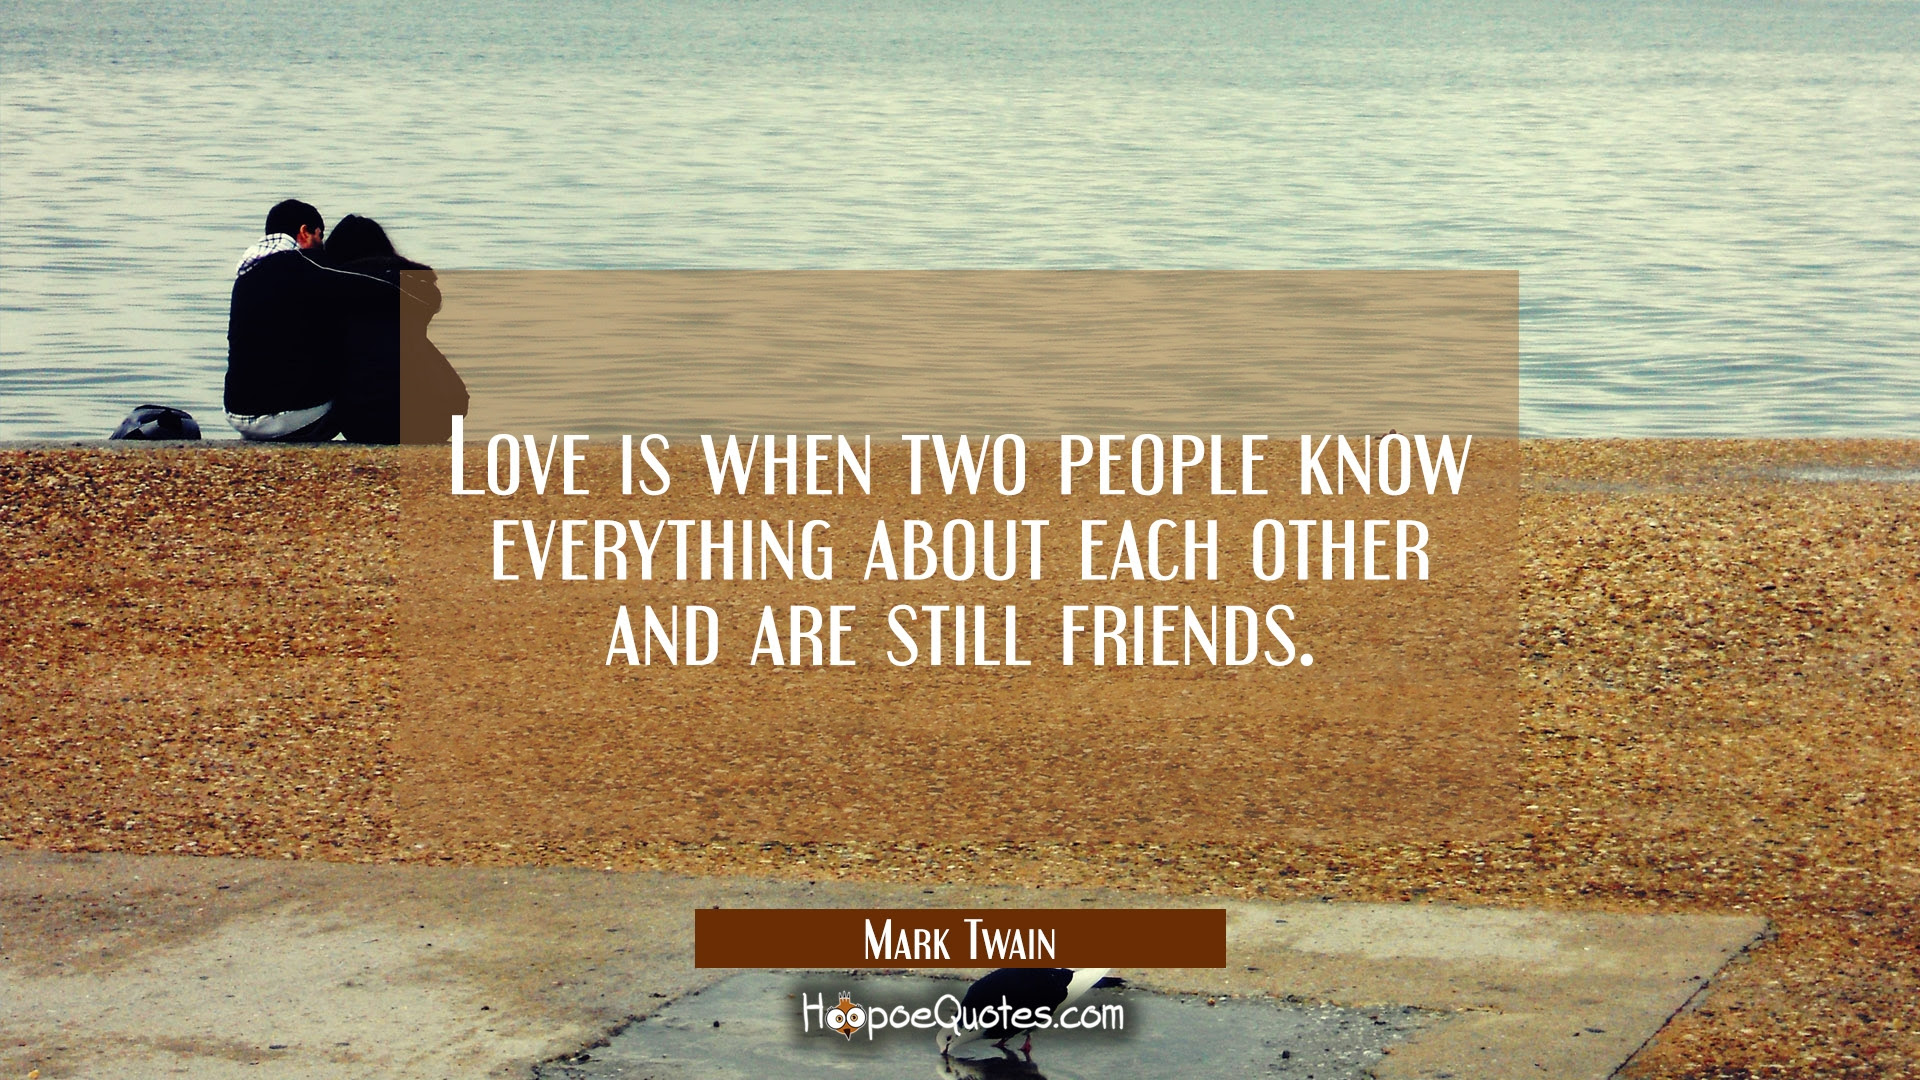 Love is when two people know everything about each other and are still friends Quotes